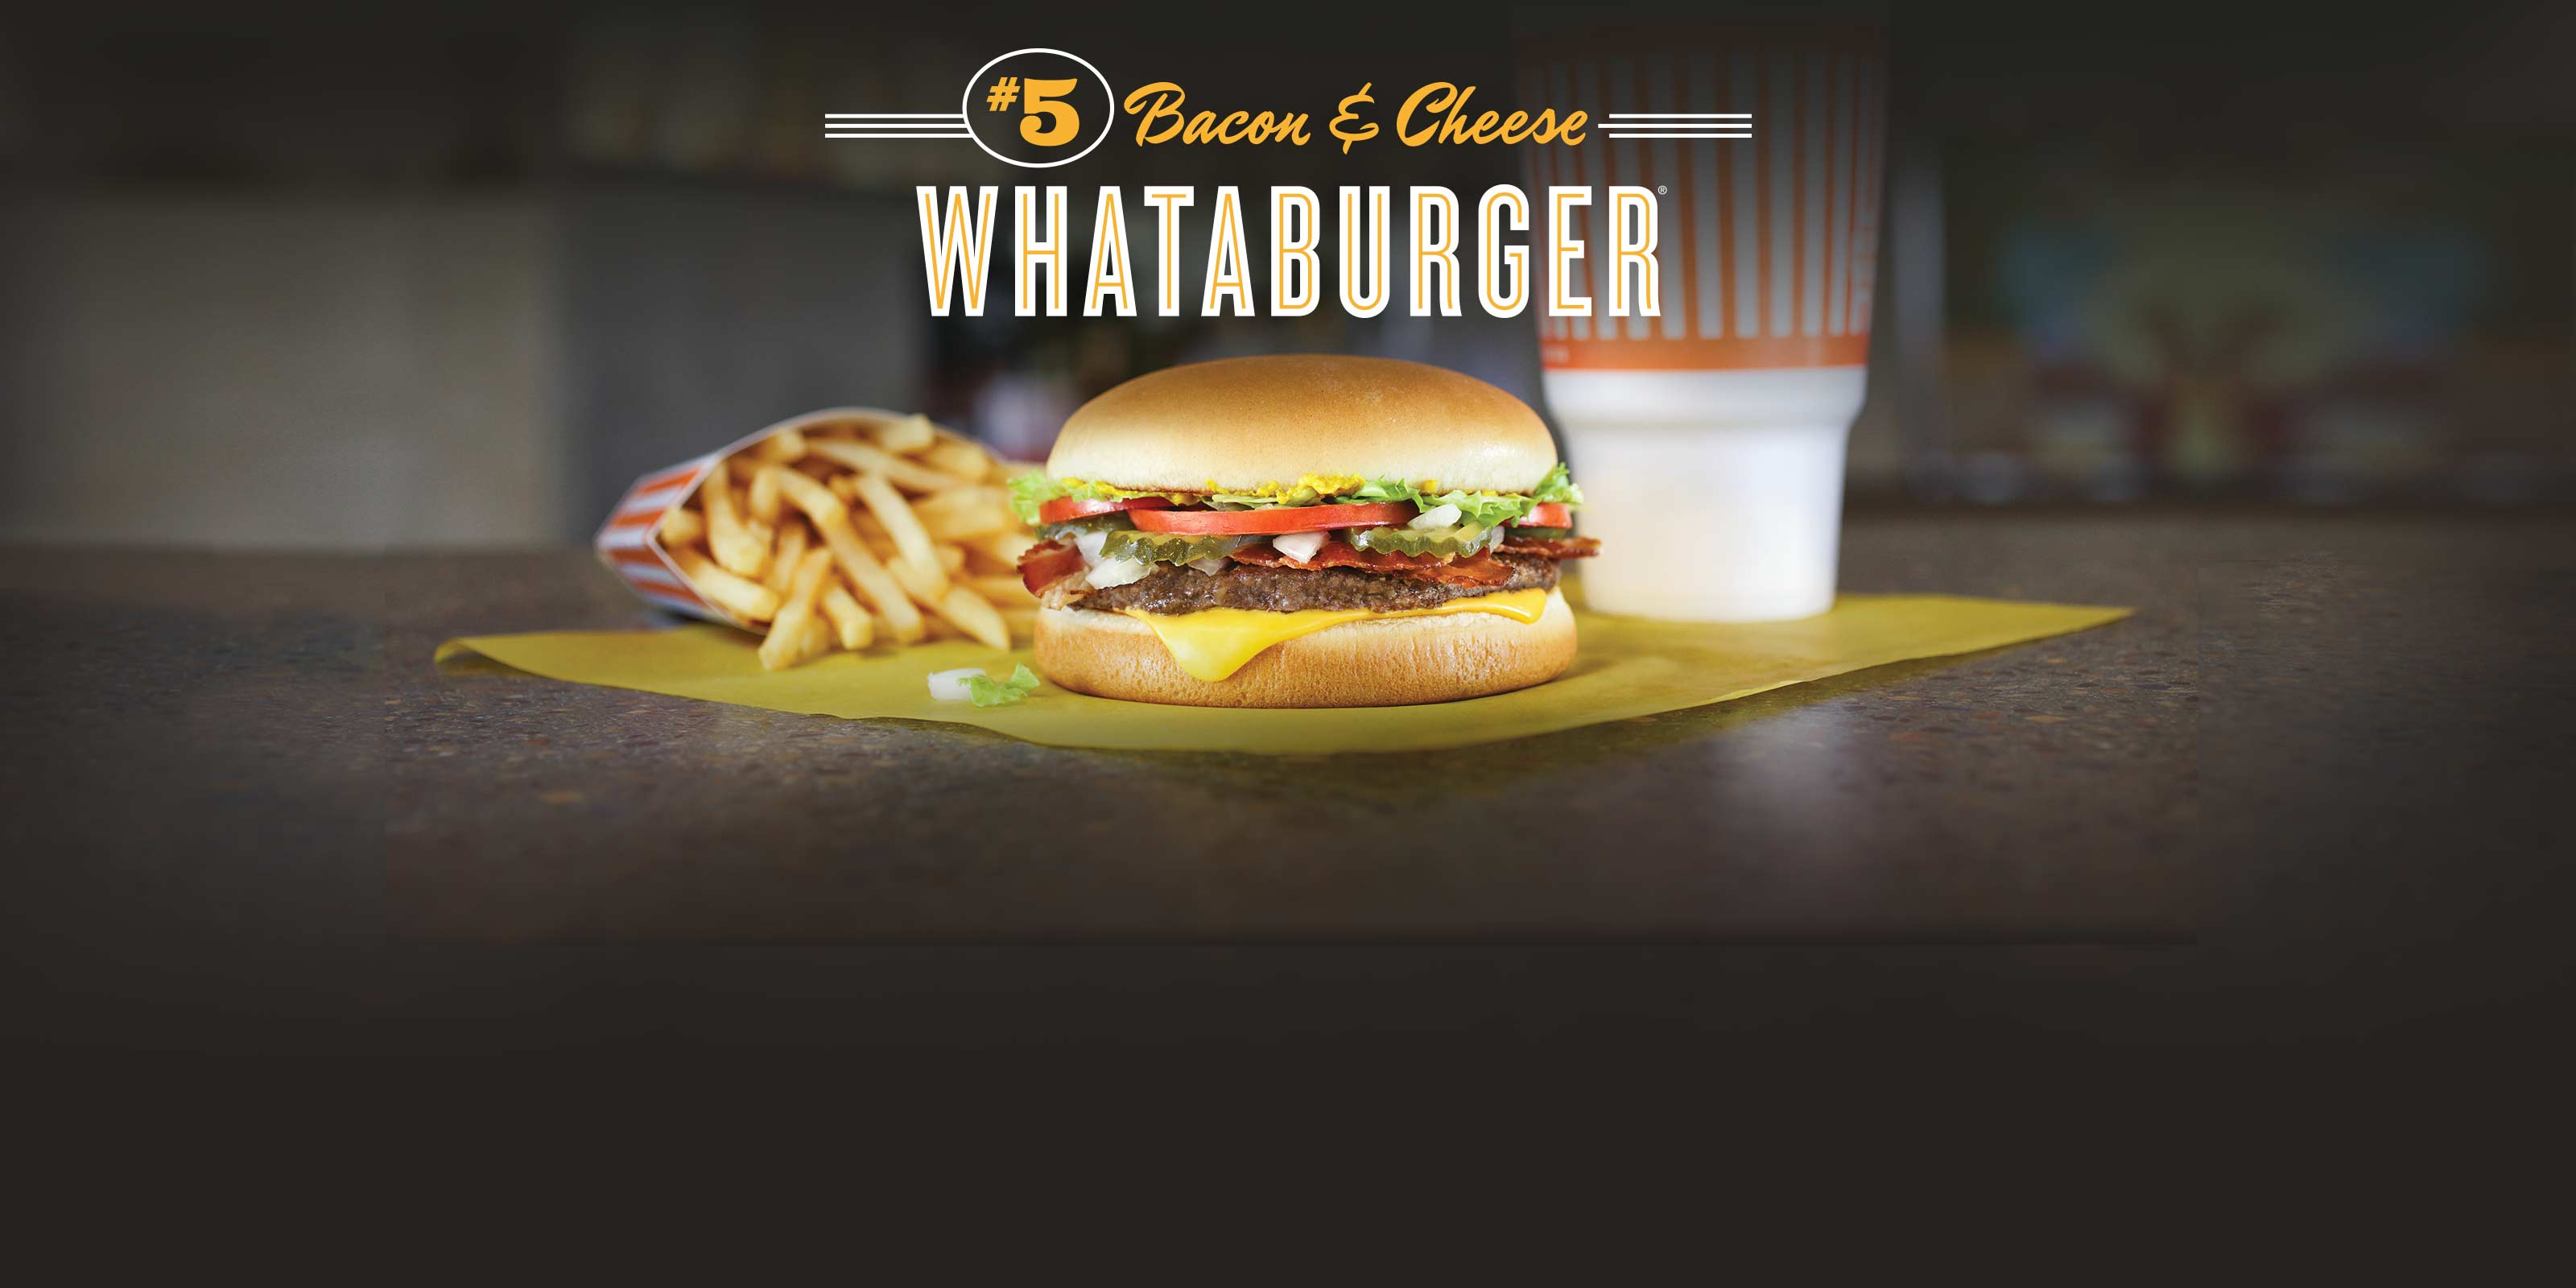 Bacon & Cheese Whataburger